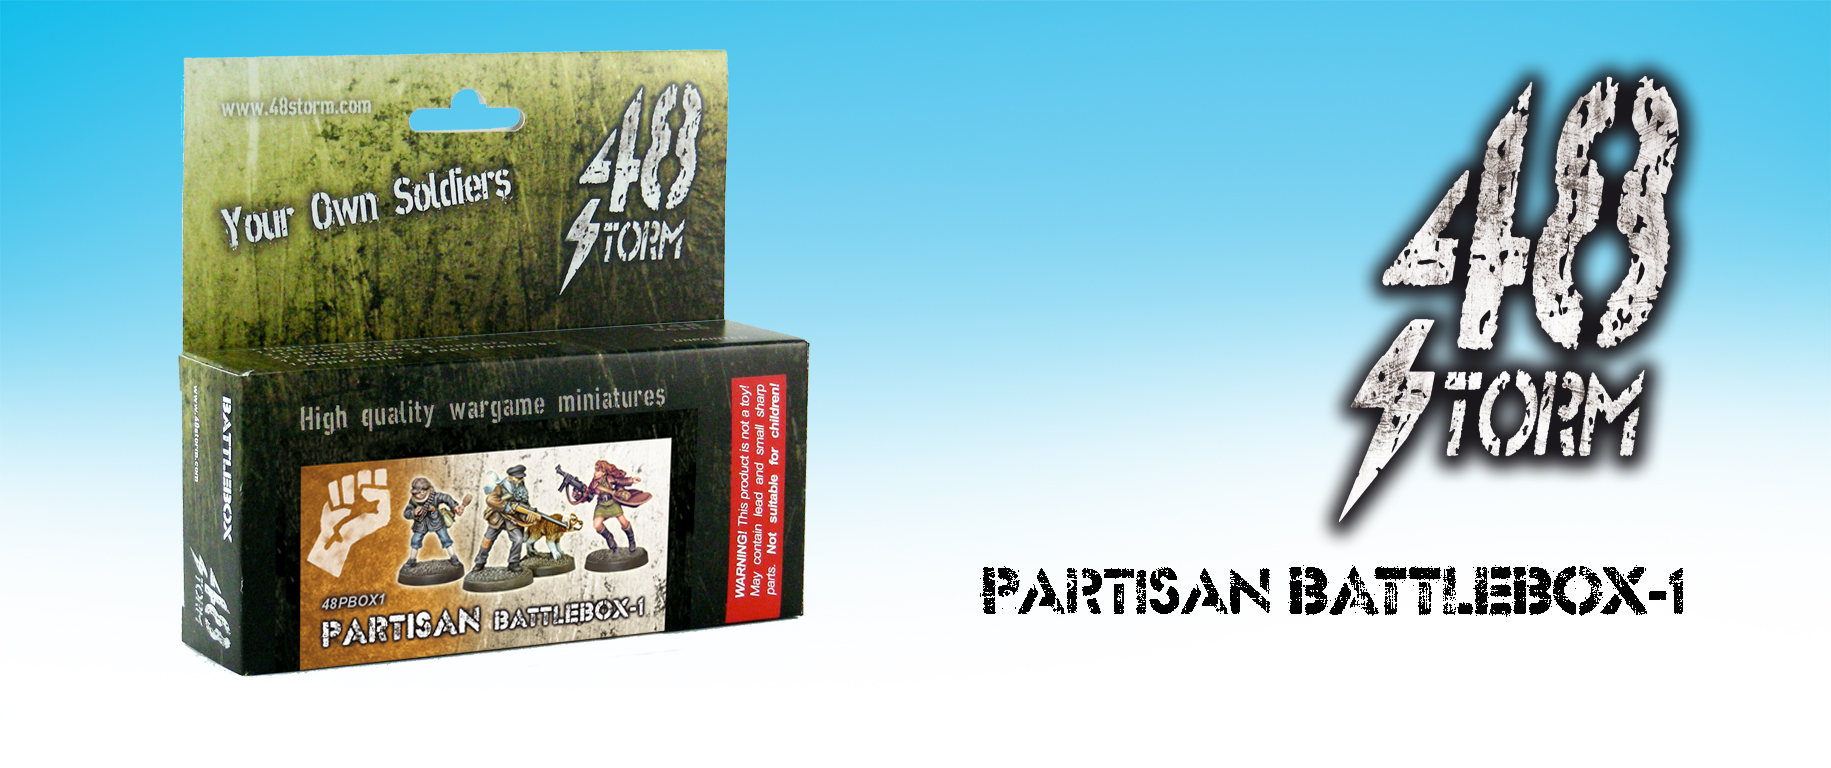 1slide-PARTISAN-BATTLEBOX